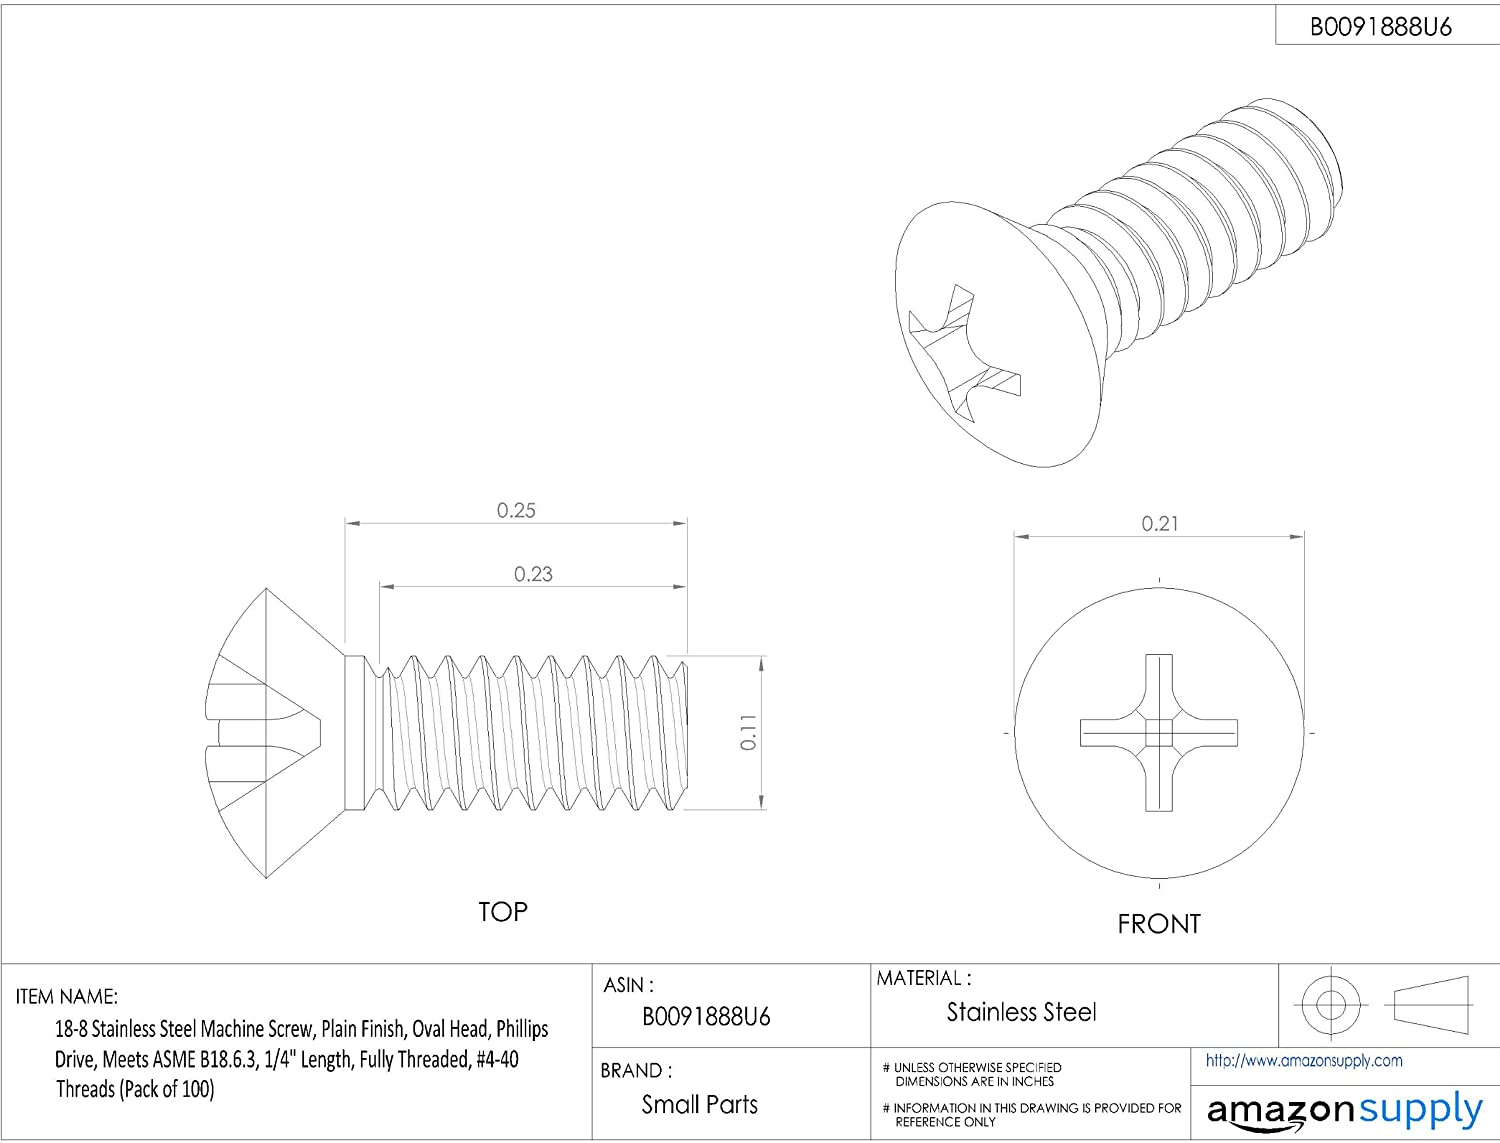 Pack of 100 Oval Head Meets ASME B18.6.3 Fully Threaded 1//4 Length Small Parts Plain Finish Phillips Drive 18-8 Stainless Steel Machine Screw #4-40 UNC Threads 1//4 Length